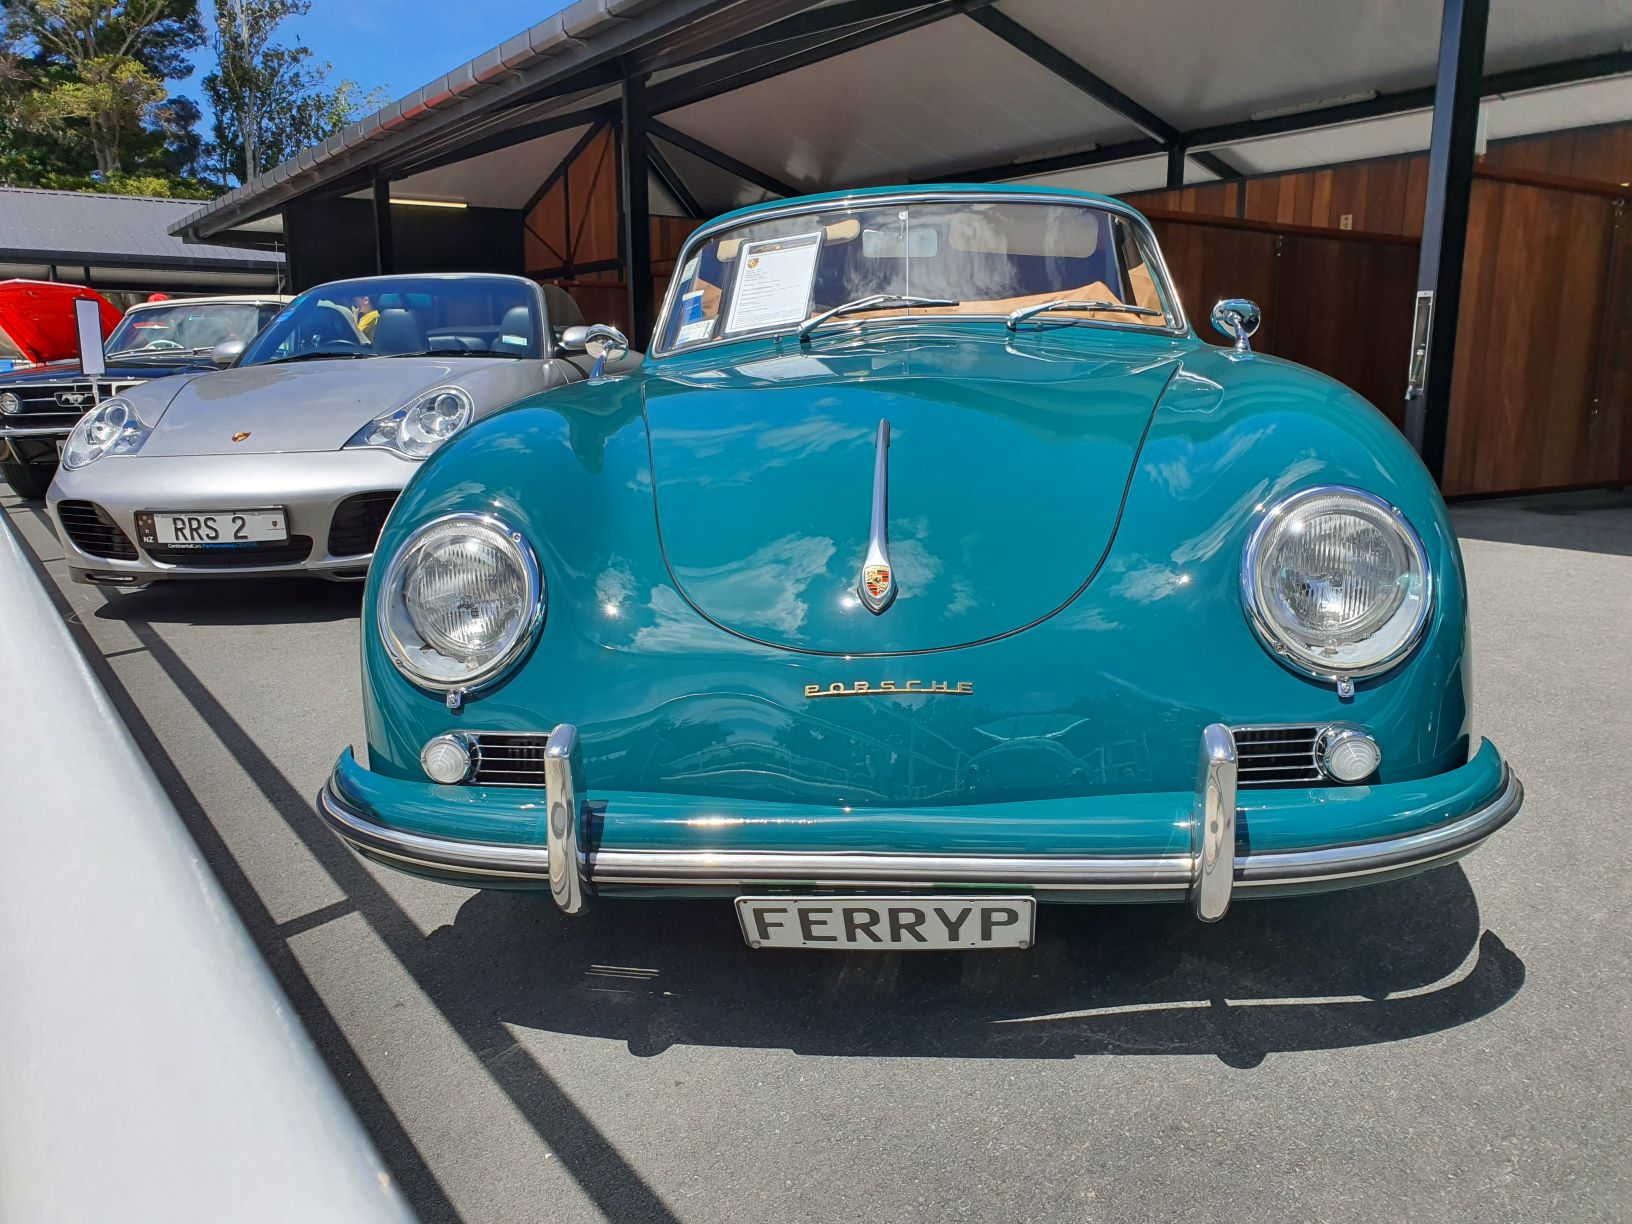 Two Porsches including a turquoise 356A Spider